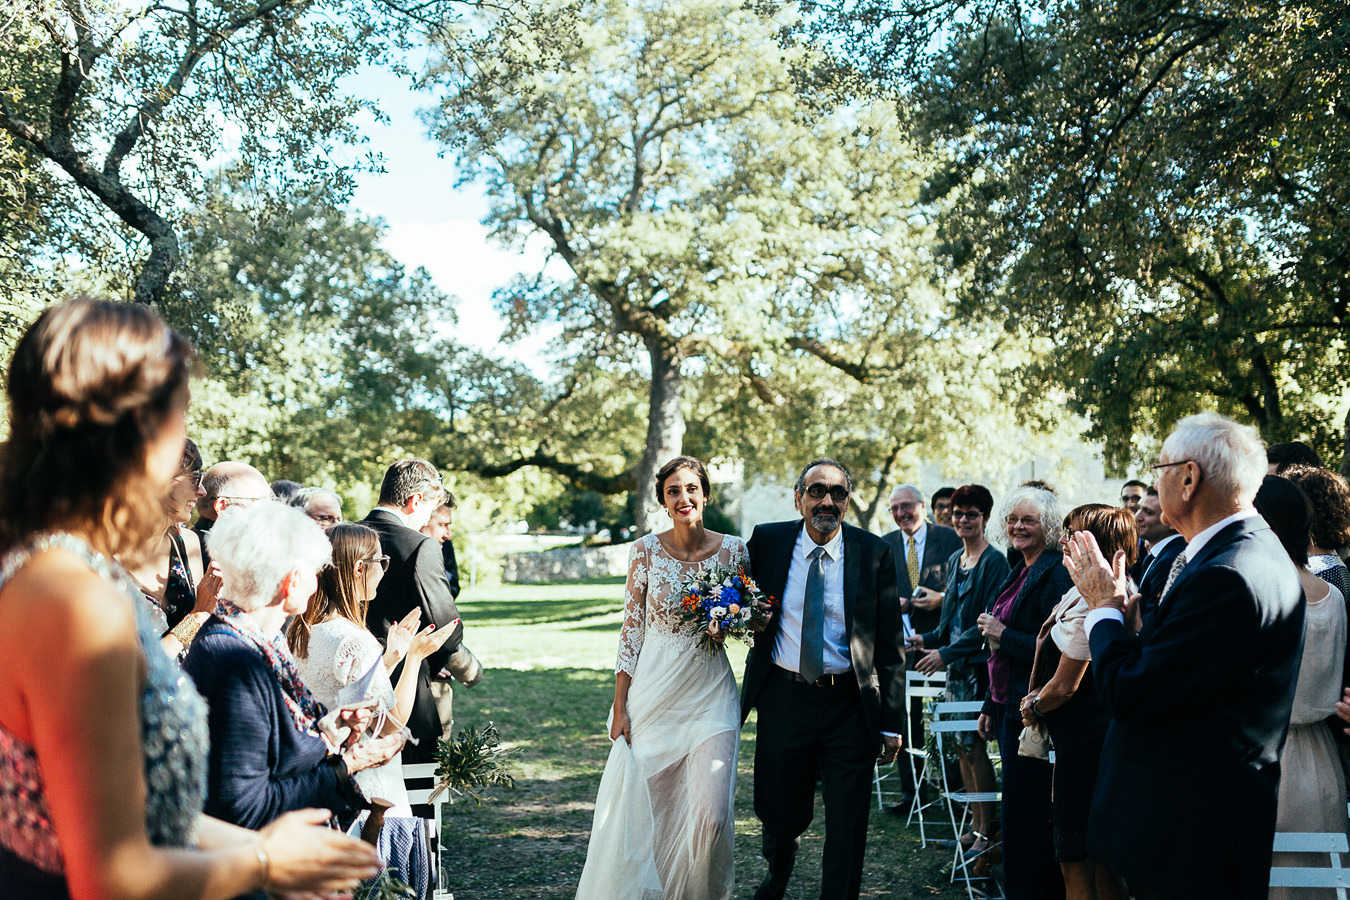 wedding_champetre_domaine_patras_a+p-314.jpg